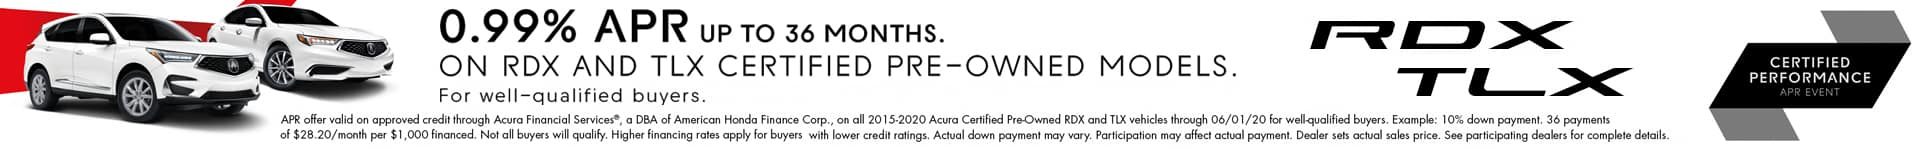 Acura Certified Pre-Owned APR Offer RDX and TLX Sunnyside Acura Nashua NH 03063